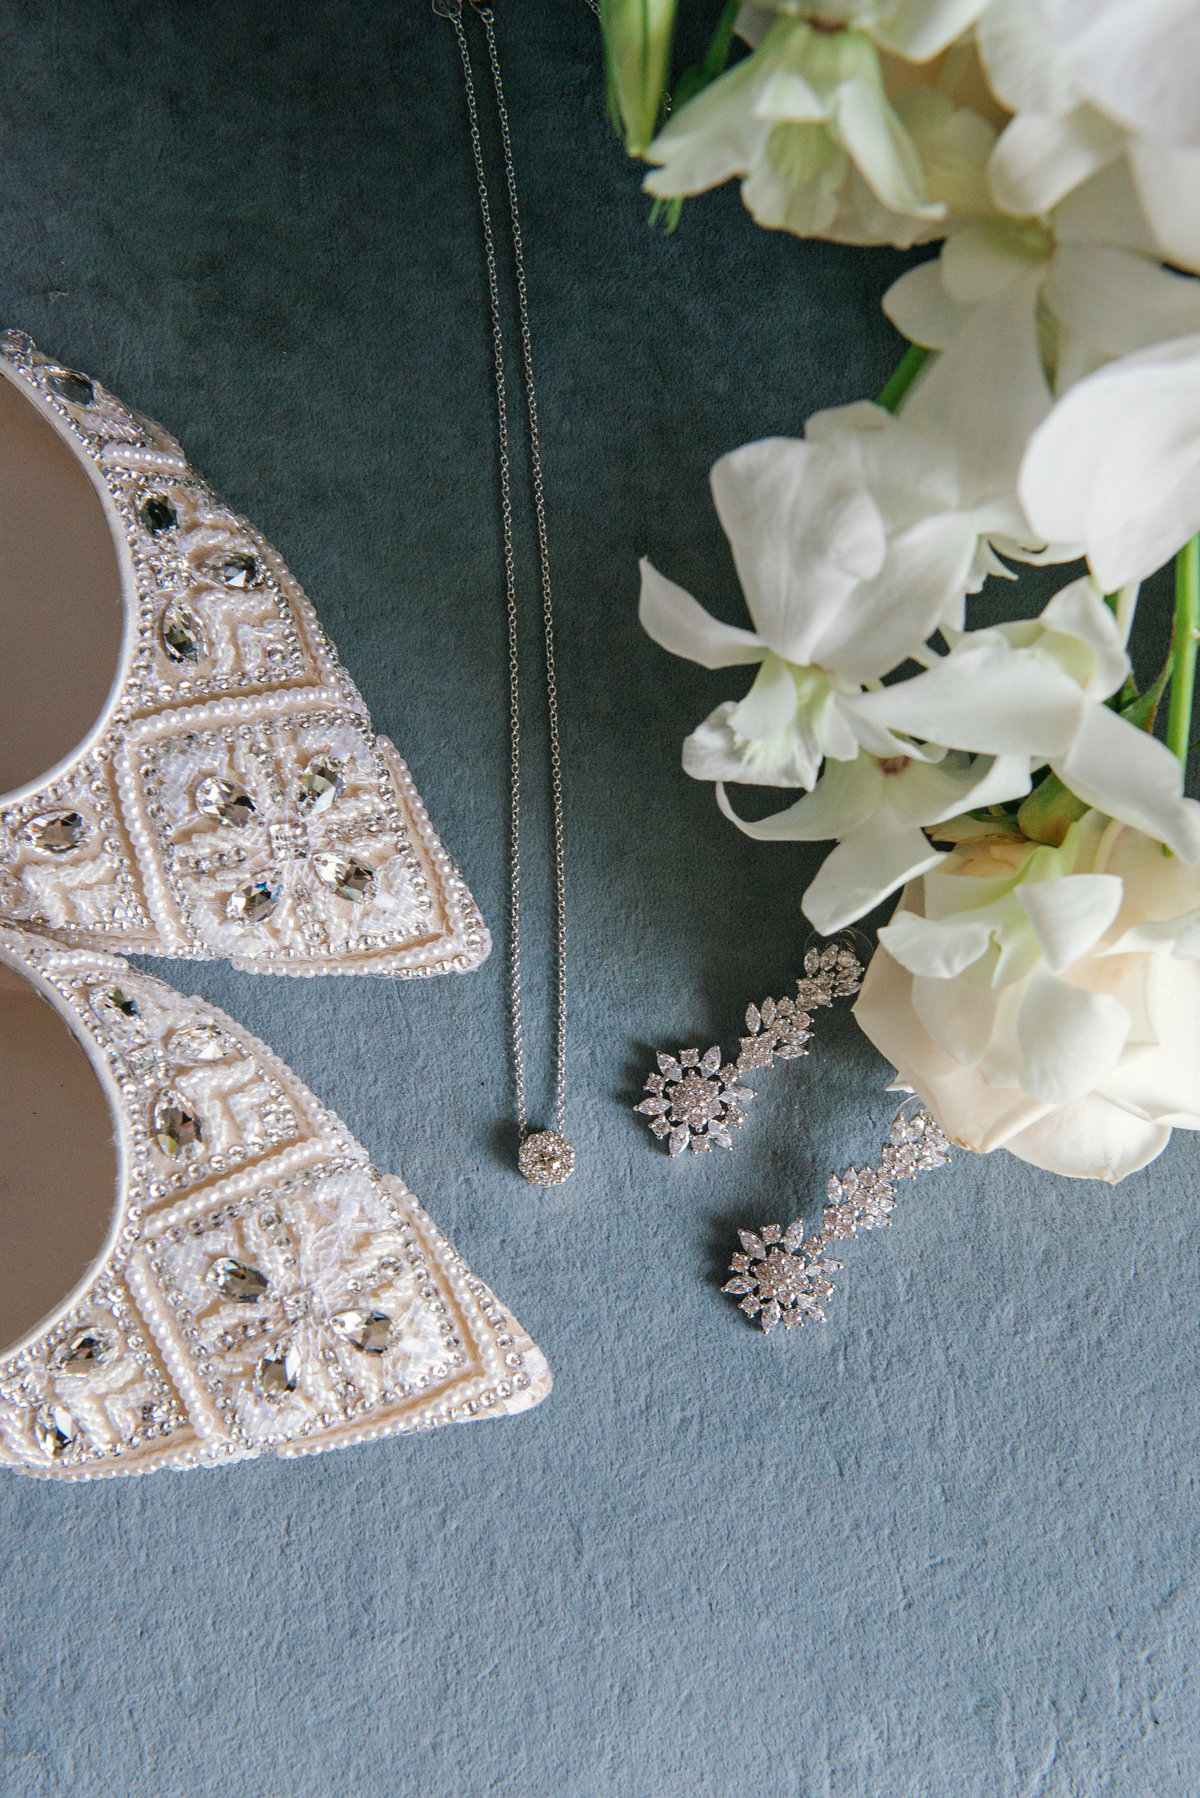 photo of bridal shoes and jewelry for wedding day at The Garden City Hotel